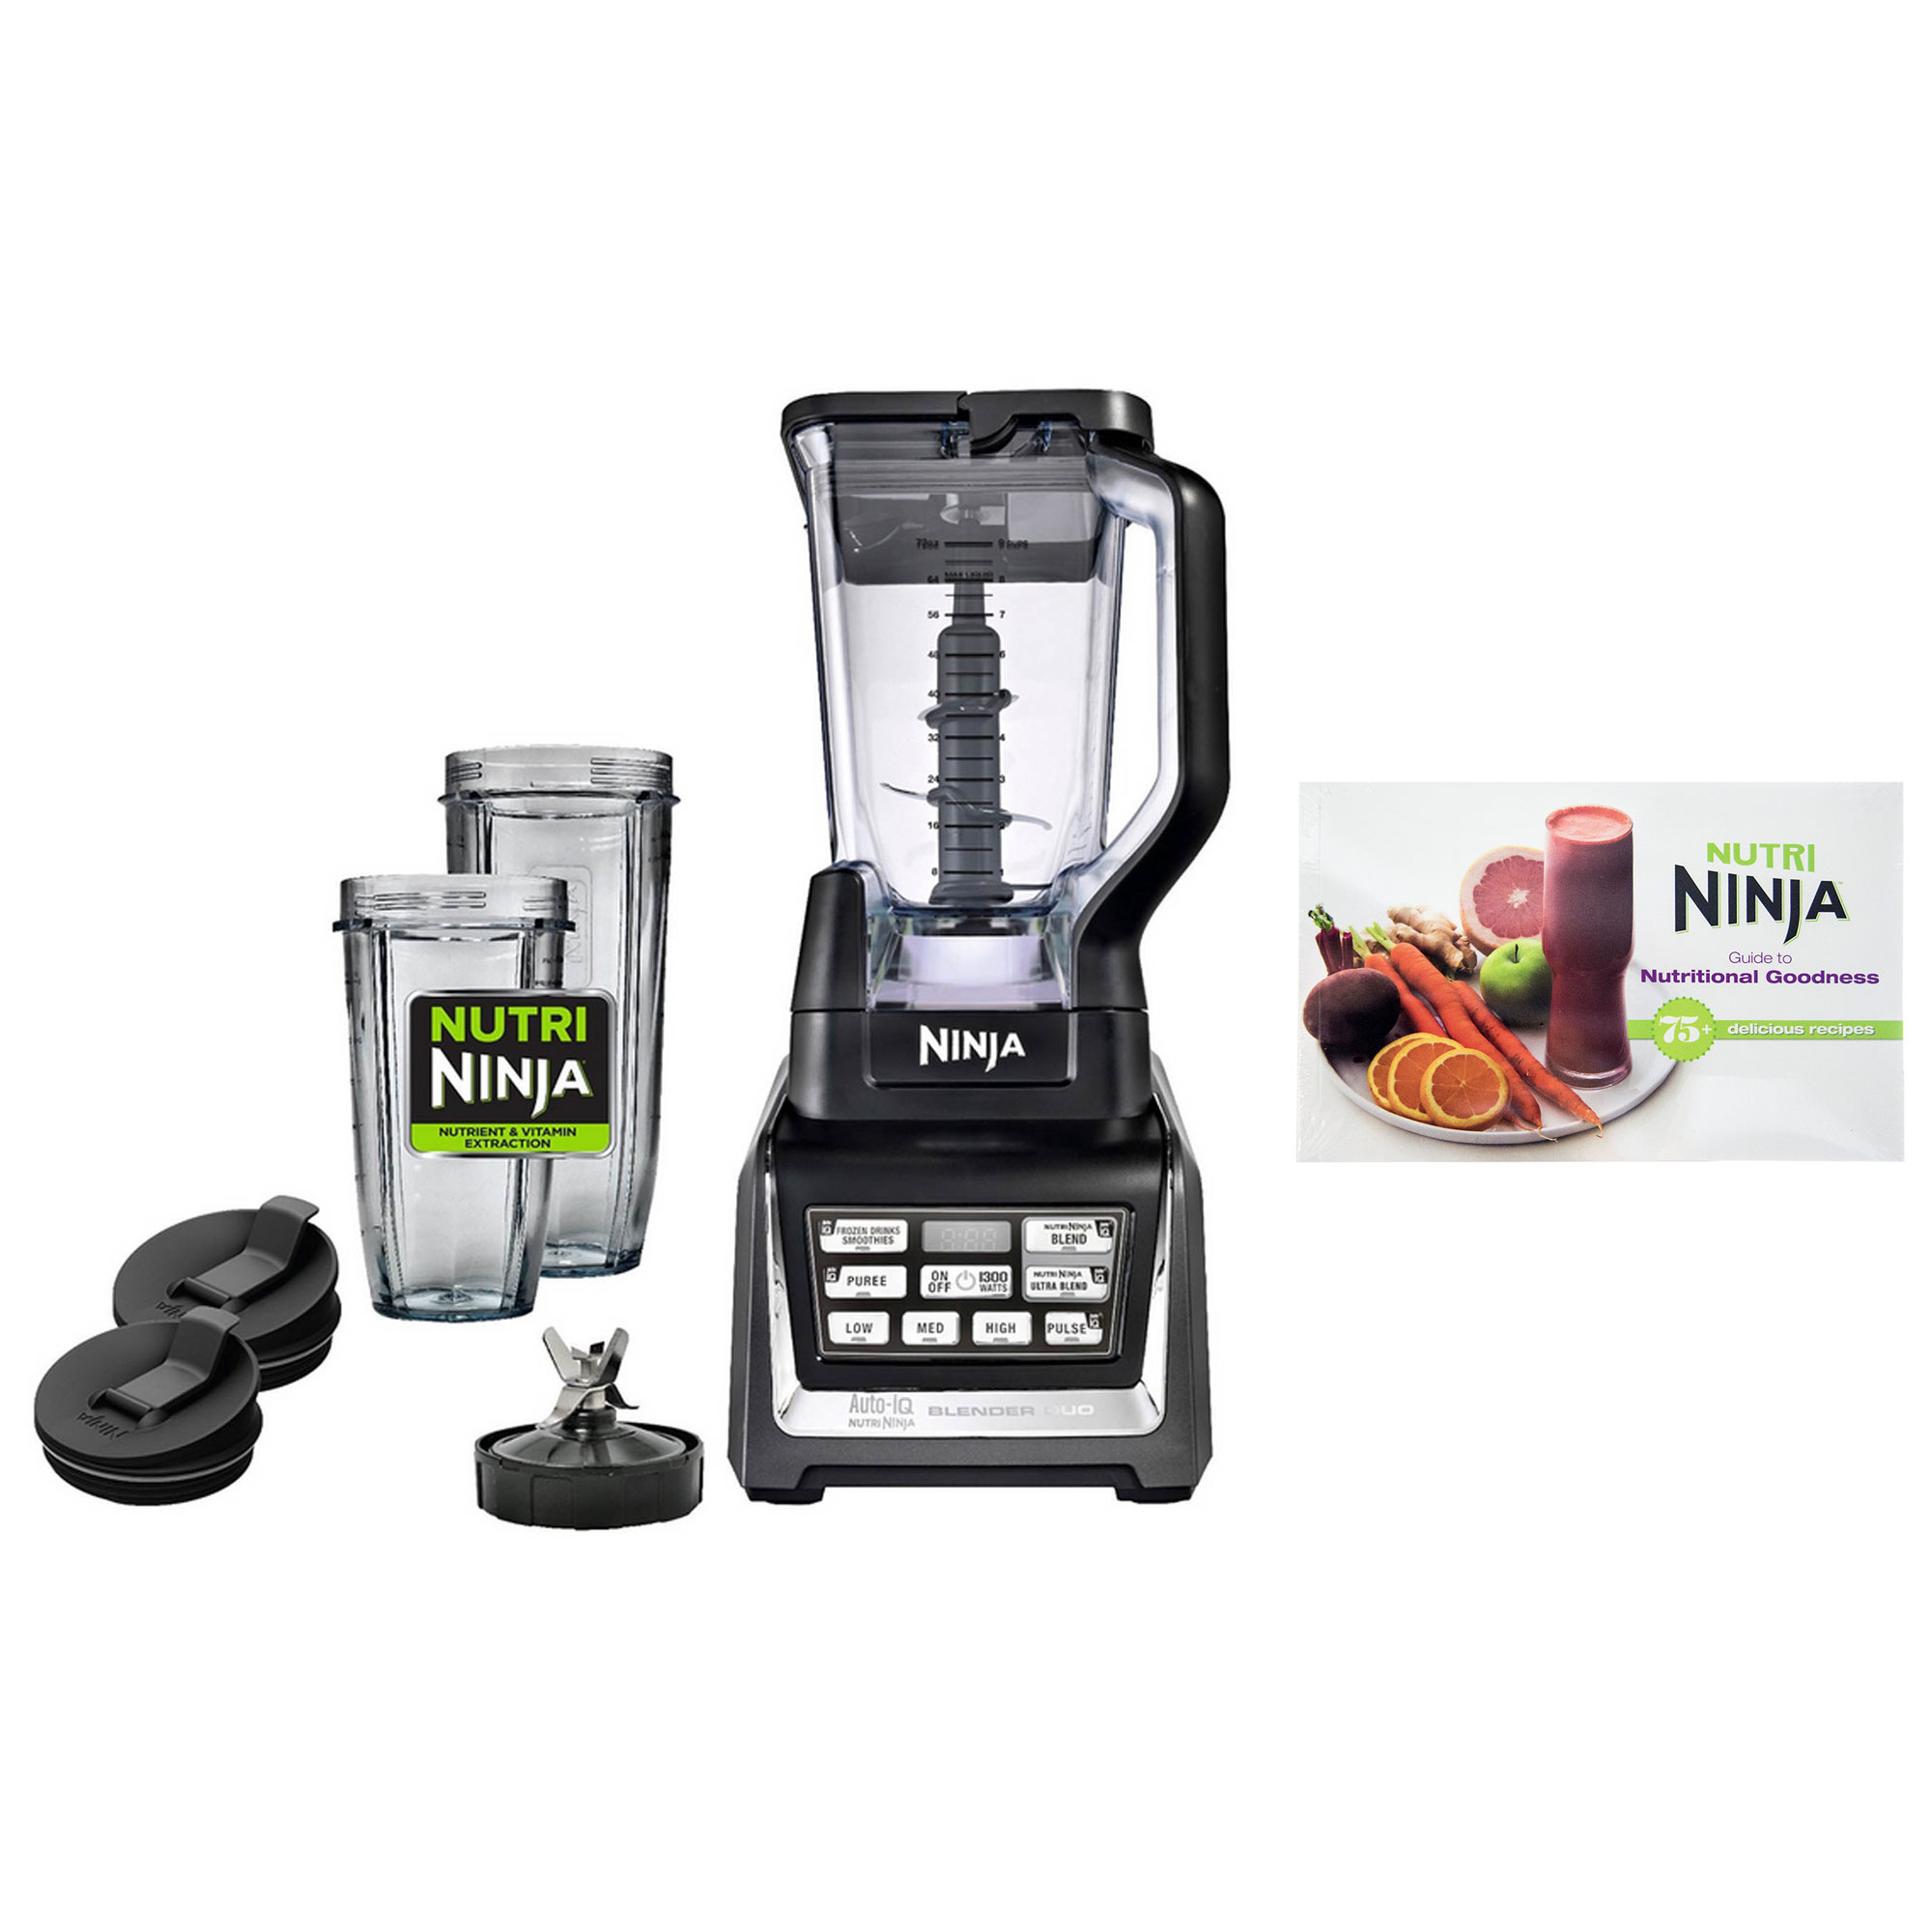 Nutri Ninja BL641 DUO 1300W Auto-iQ Pro Digital Power Blender with Recipe Guide